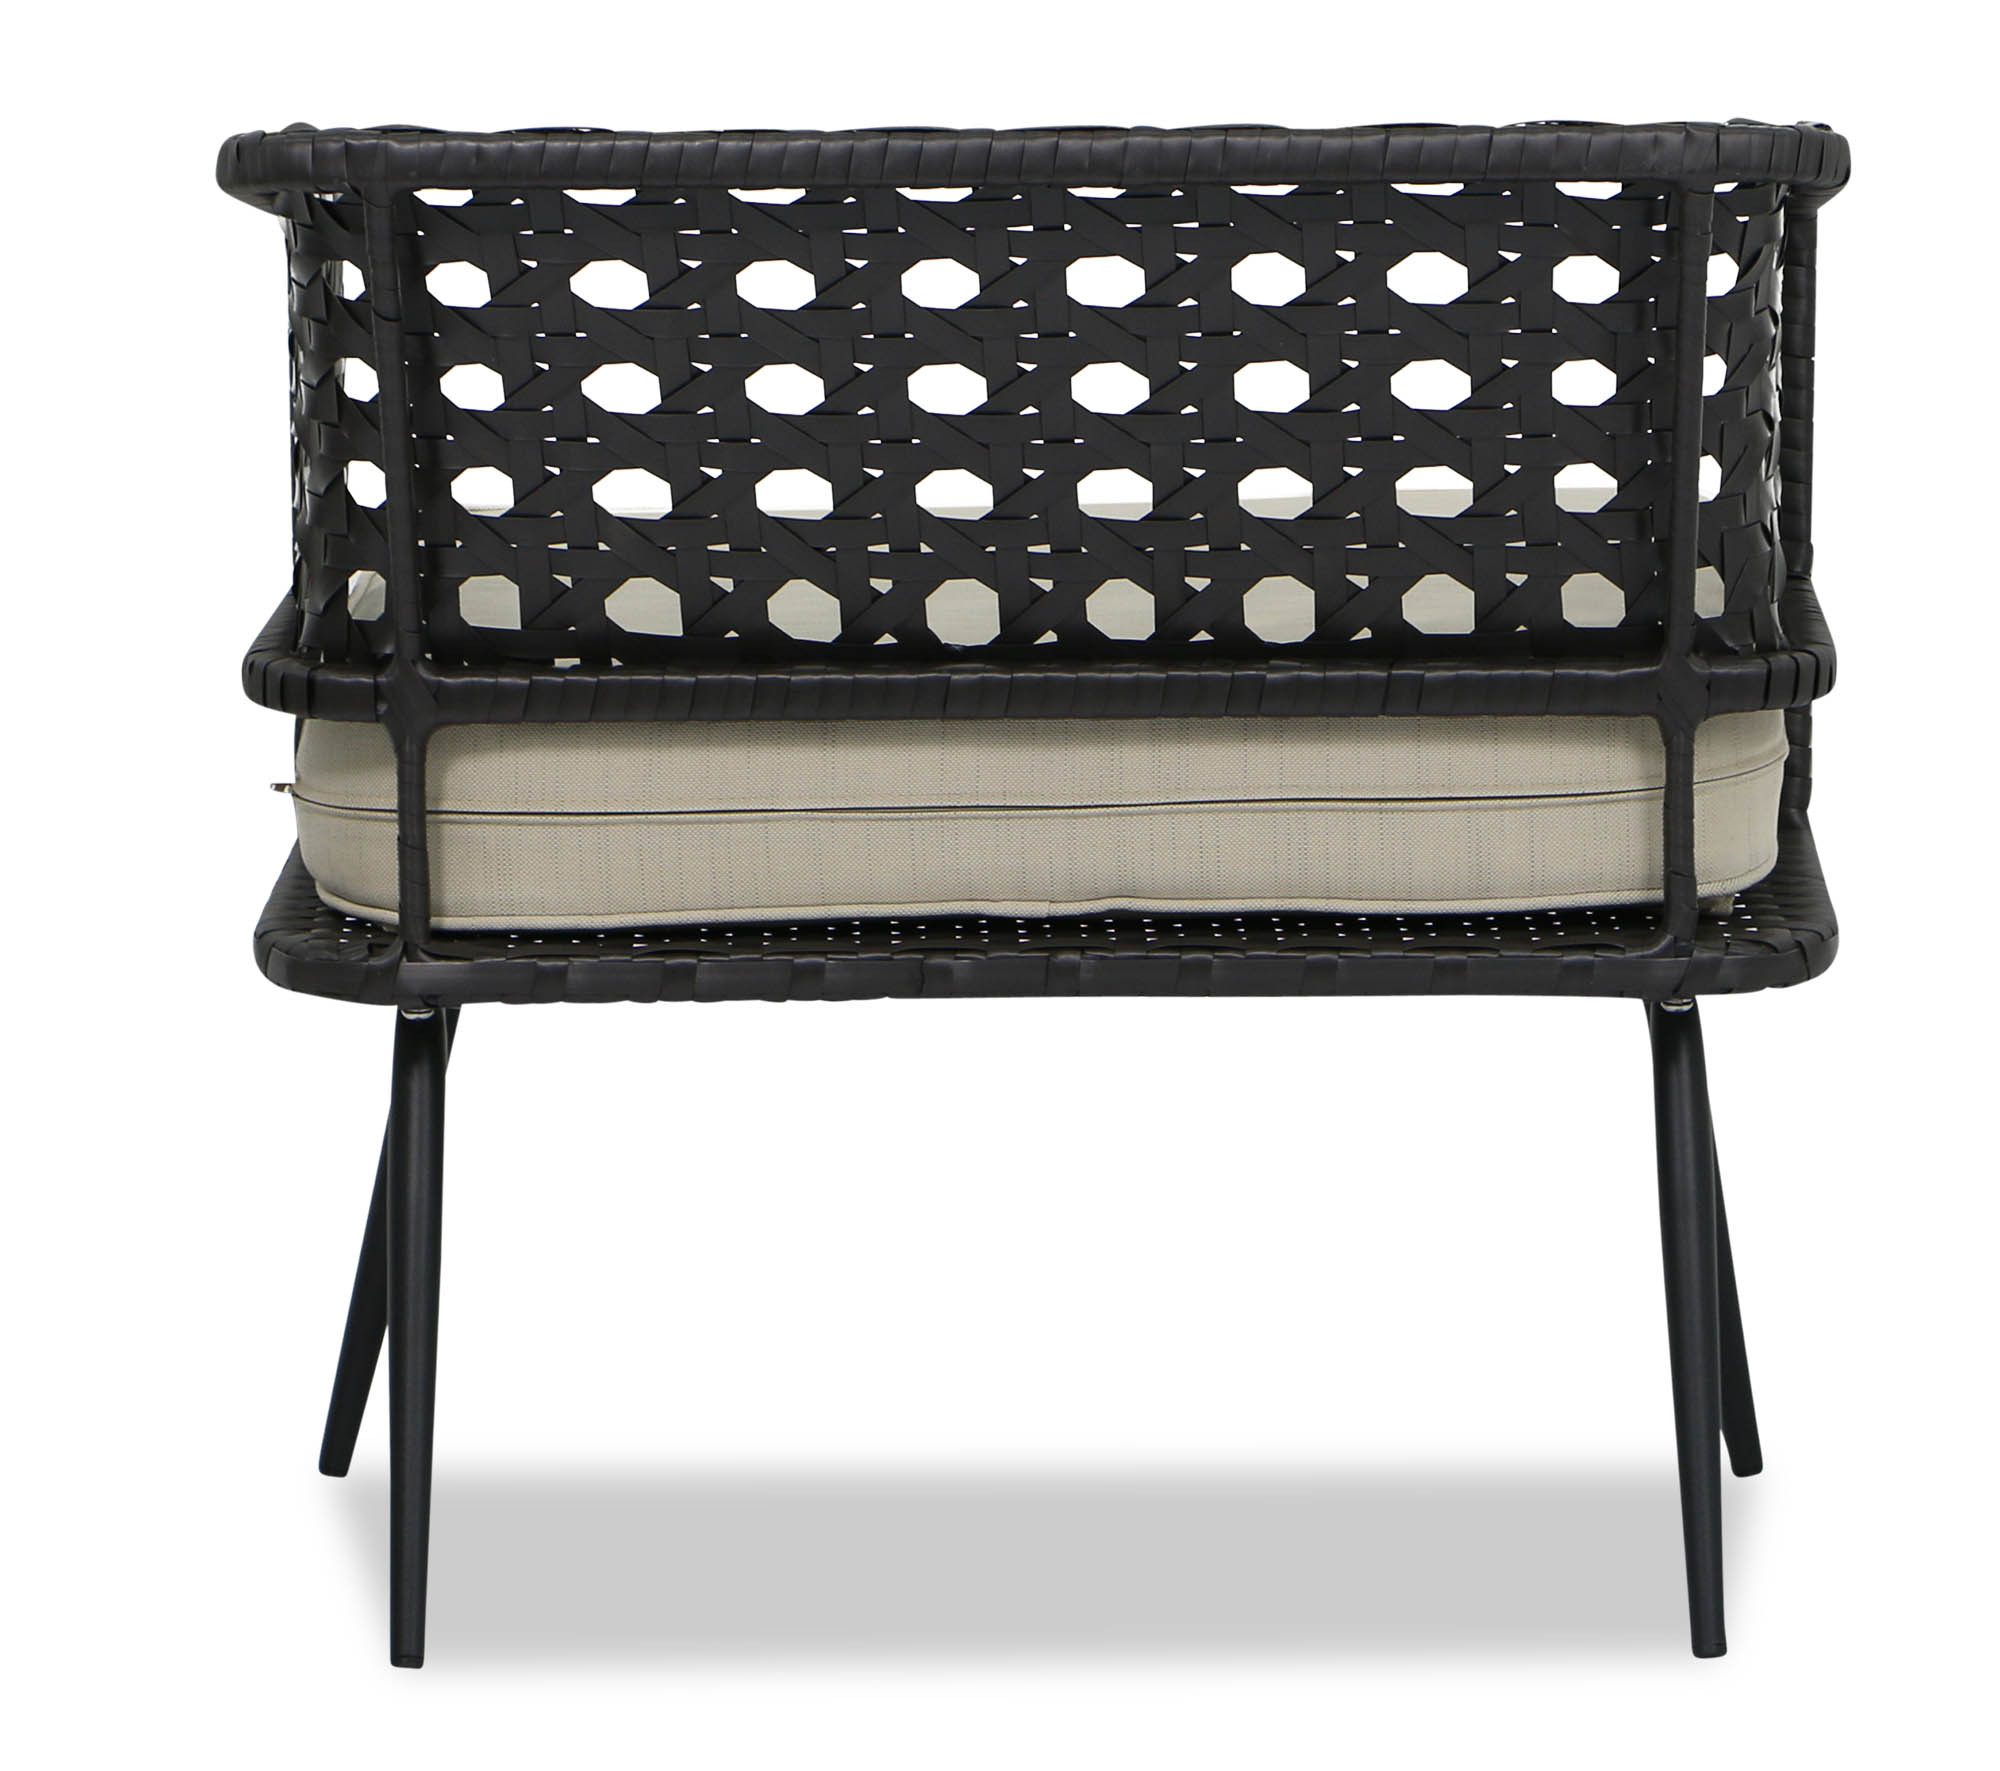 Corral Wicker Chair Furniture & Home Décor